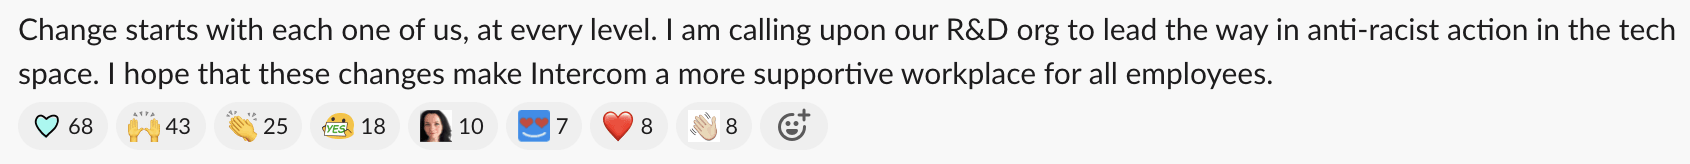 A snippet of the open letter Sam sent to our R&D Slack channel.